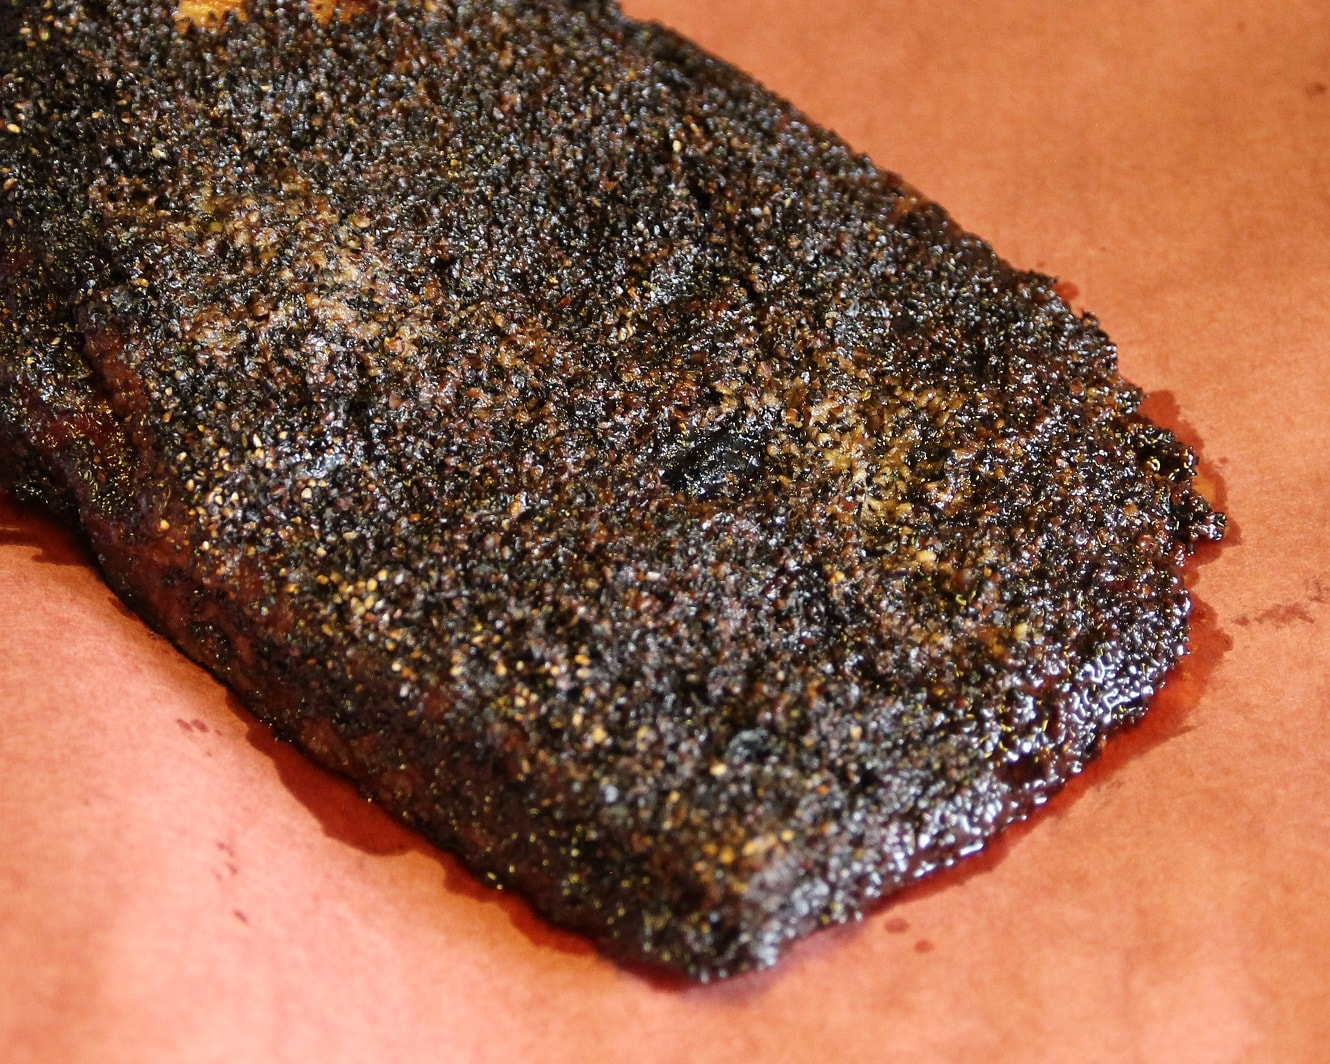 Whole brisket ready to be sliced from Pappa Charlie's Barbeque